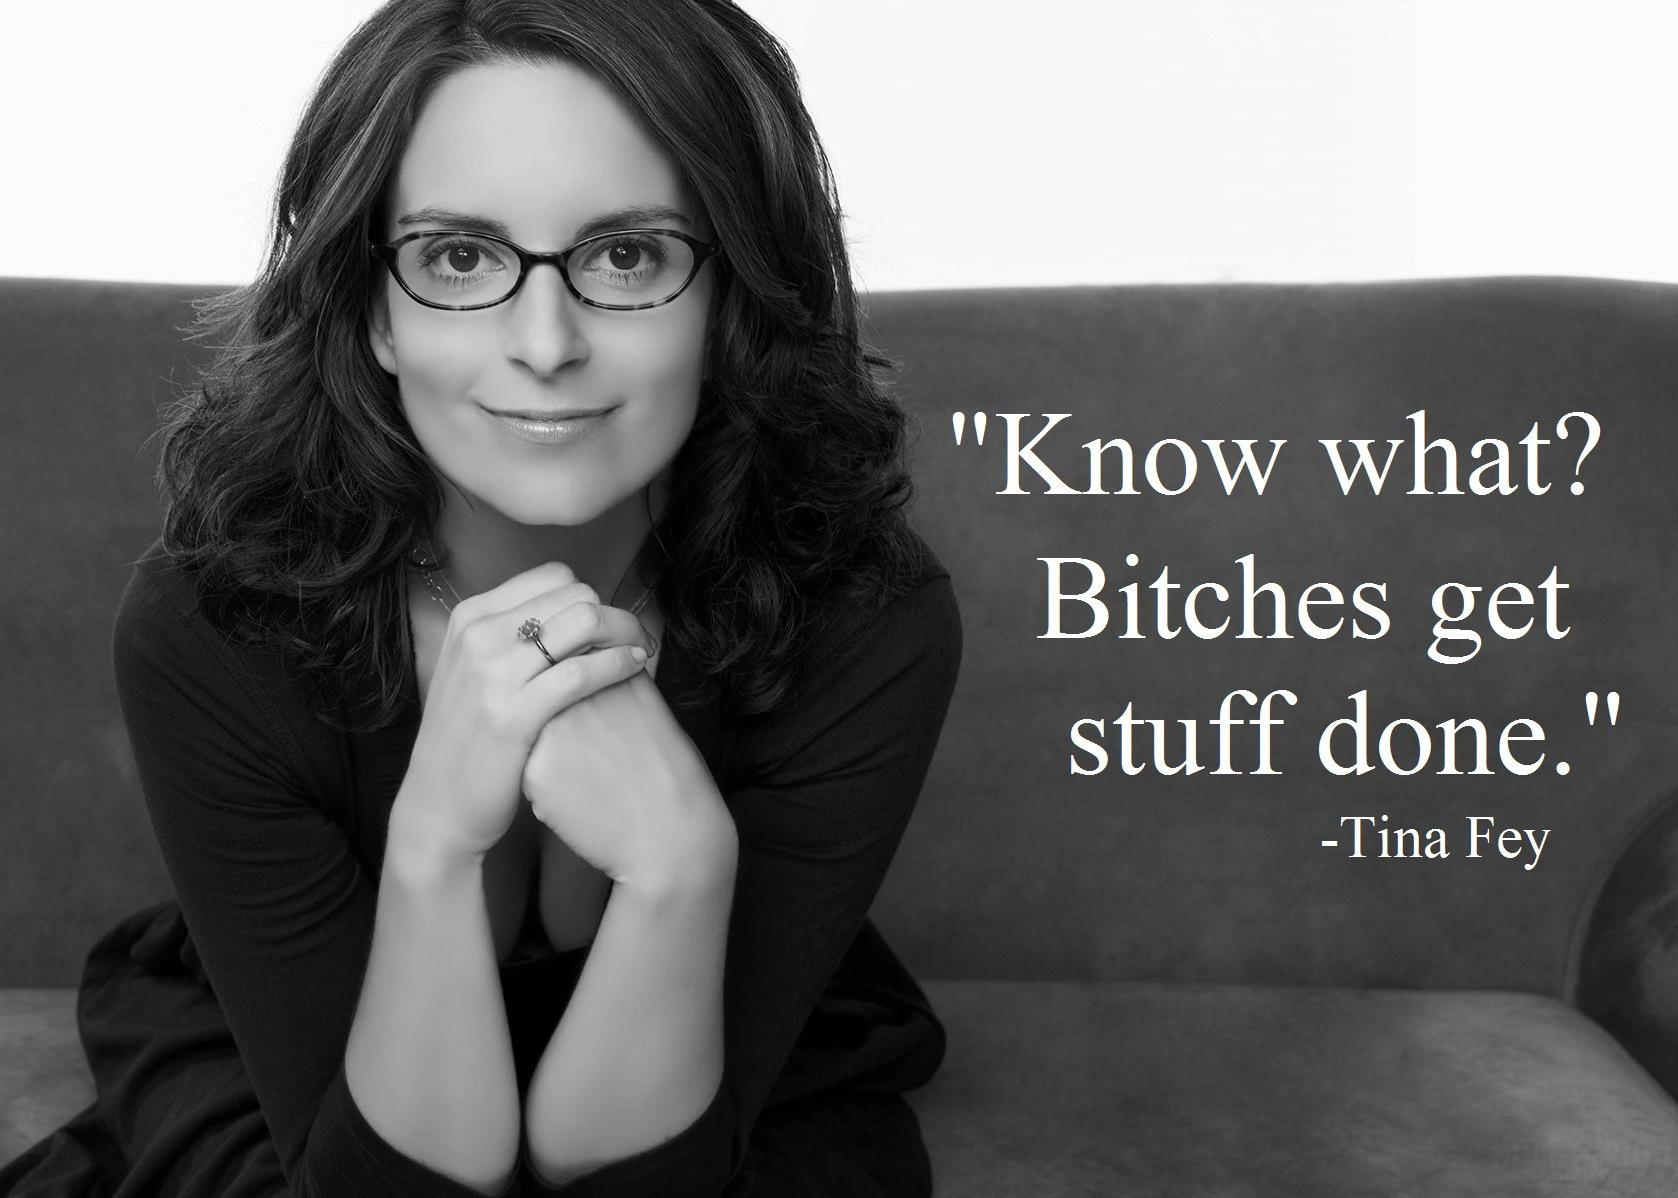 Tina Fey's quote #2